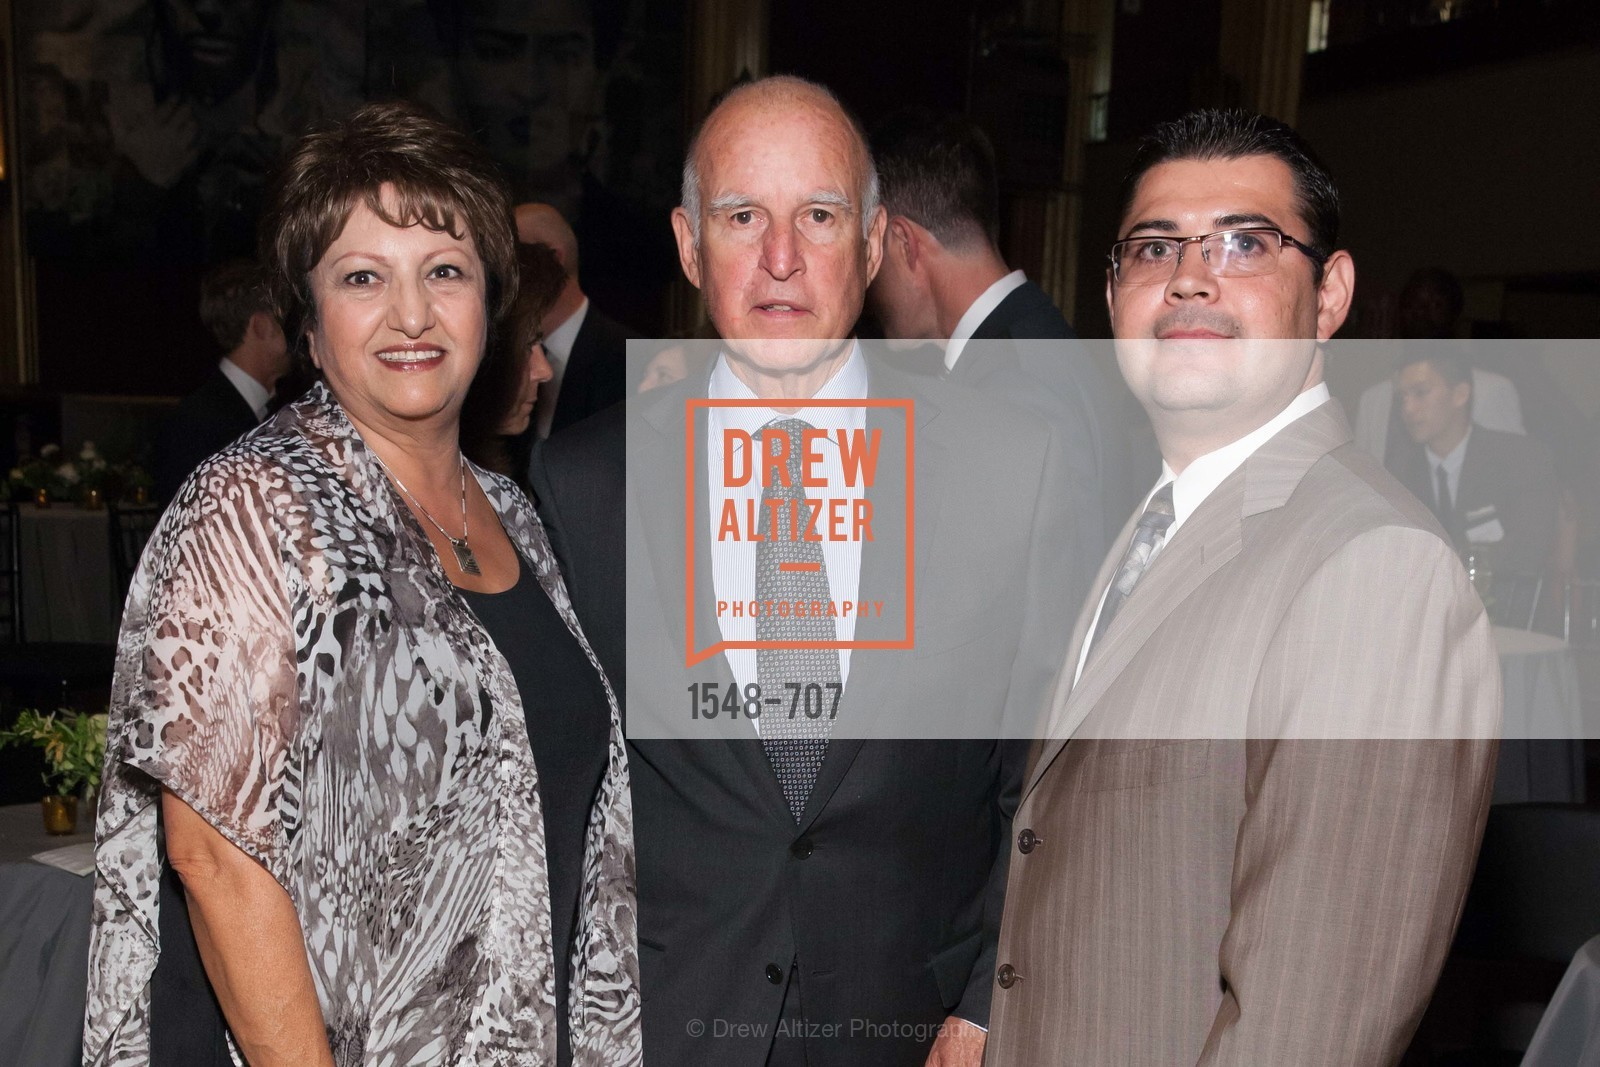 Lili Zahedani, Governor Jerry Brown, David Quintana, OAKLAND SCHOOL FOR THE ARTS Gala 2015 with Governor Jerry Brown, US, May 8th, 2015,Drew Altizer, Drew Altizer Photography, full-service agency, private events, San Francisco photographer, photographer california